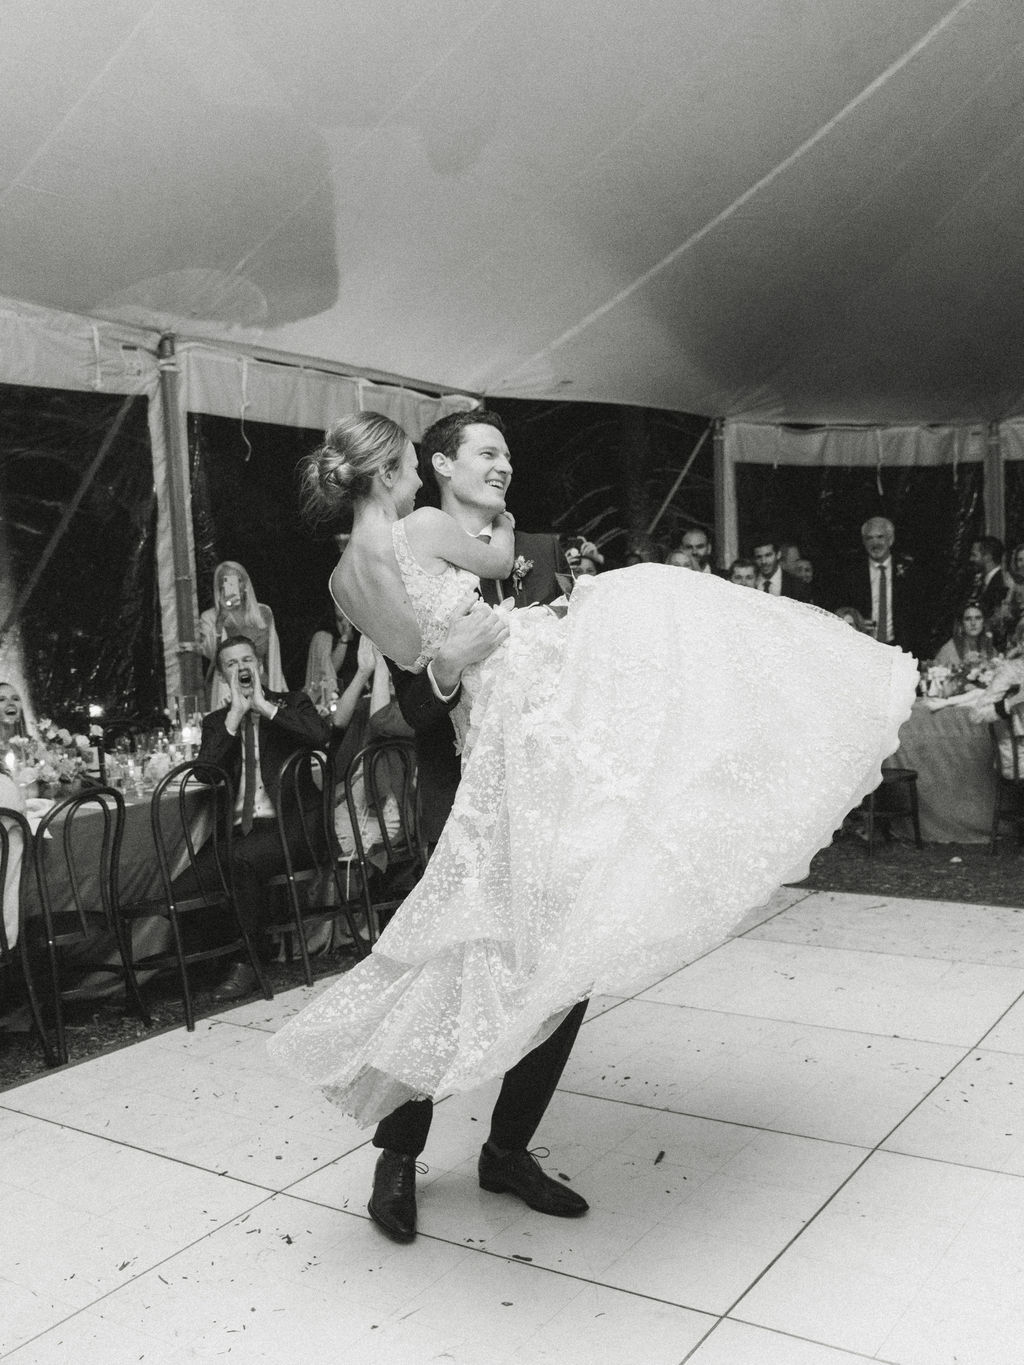 groom lifting bride during first wedding dance